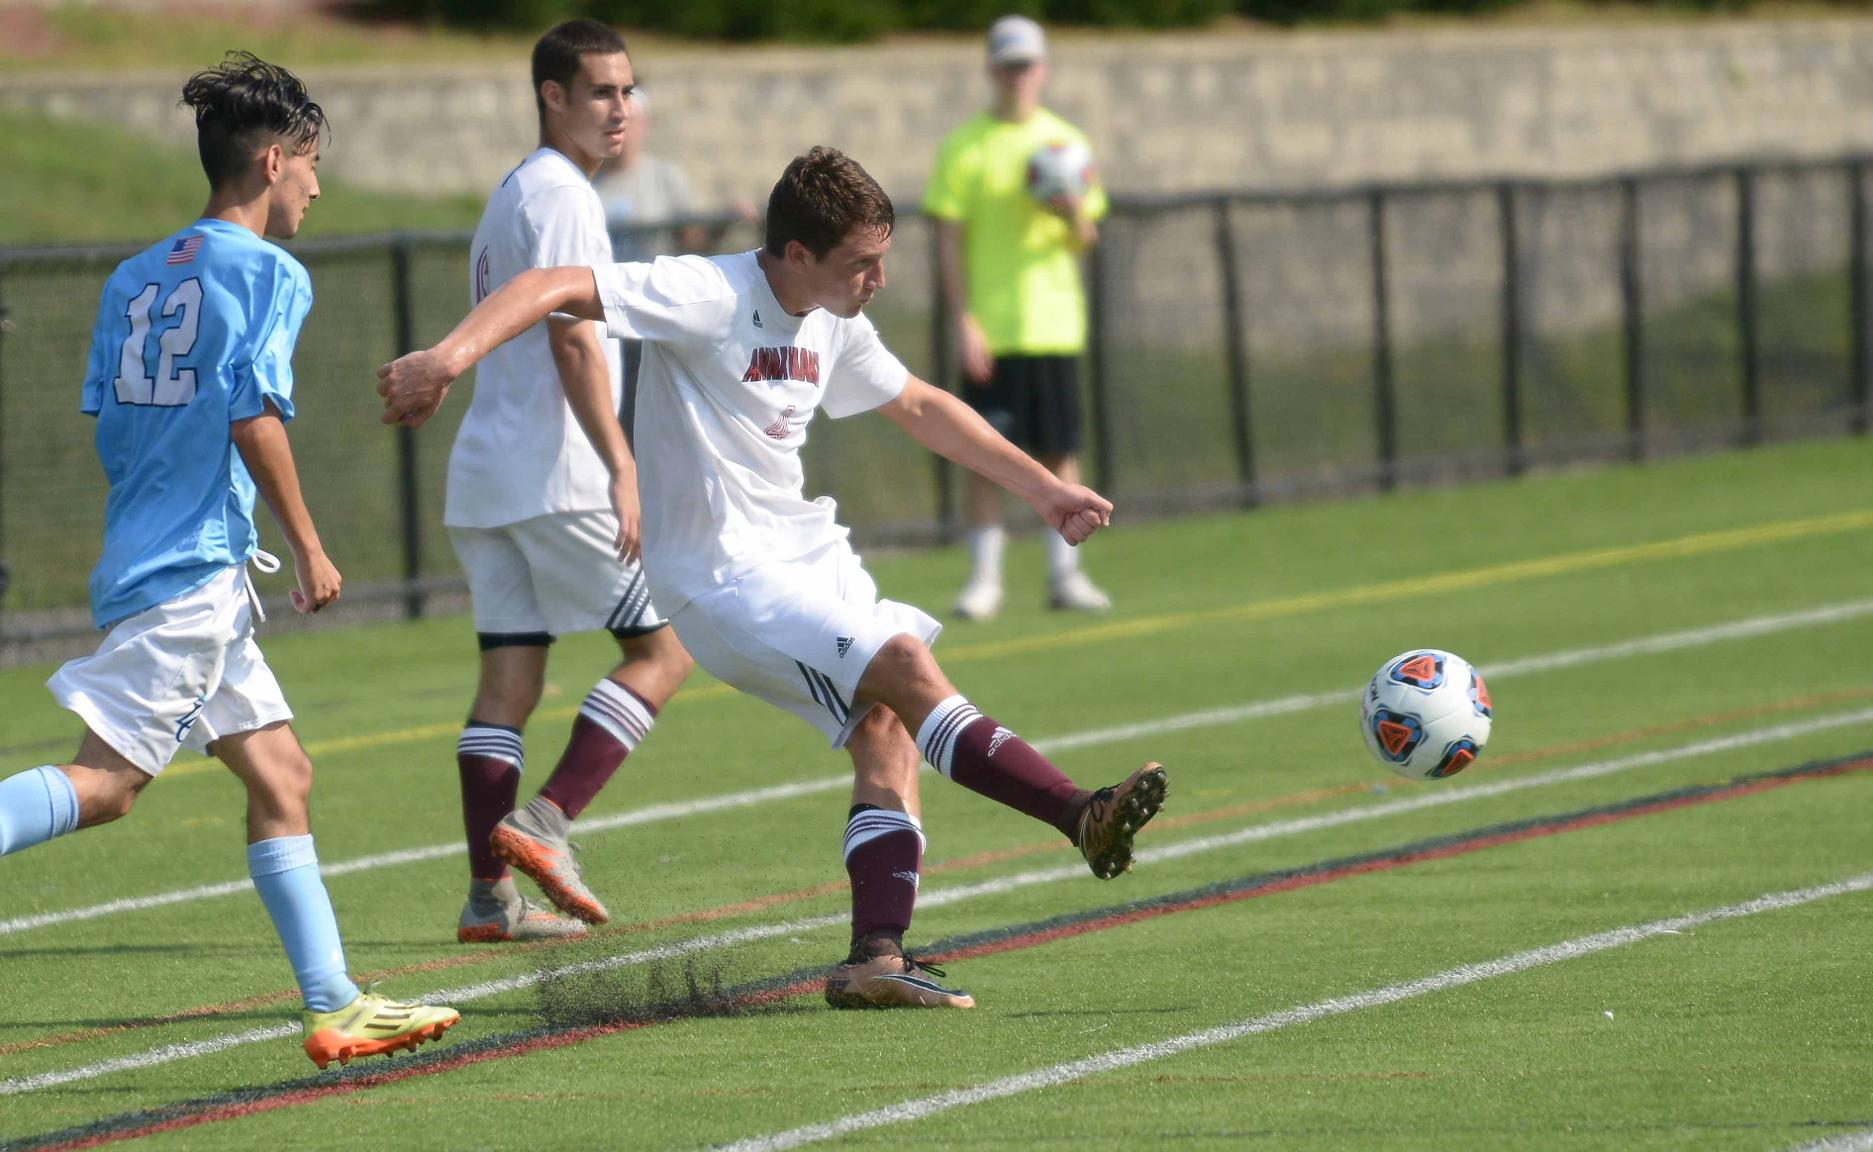 Men's Soccer Claims 3-1 Victory over Becker